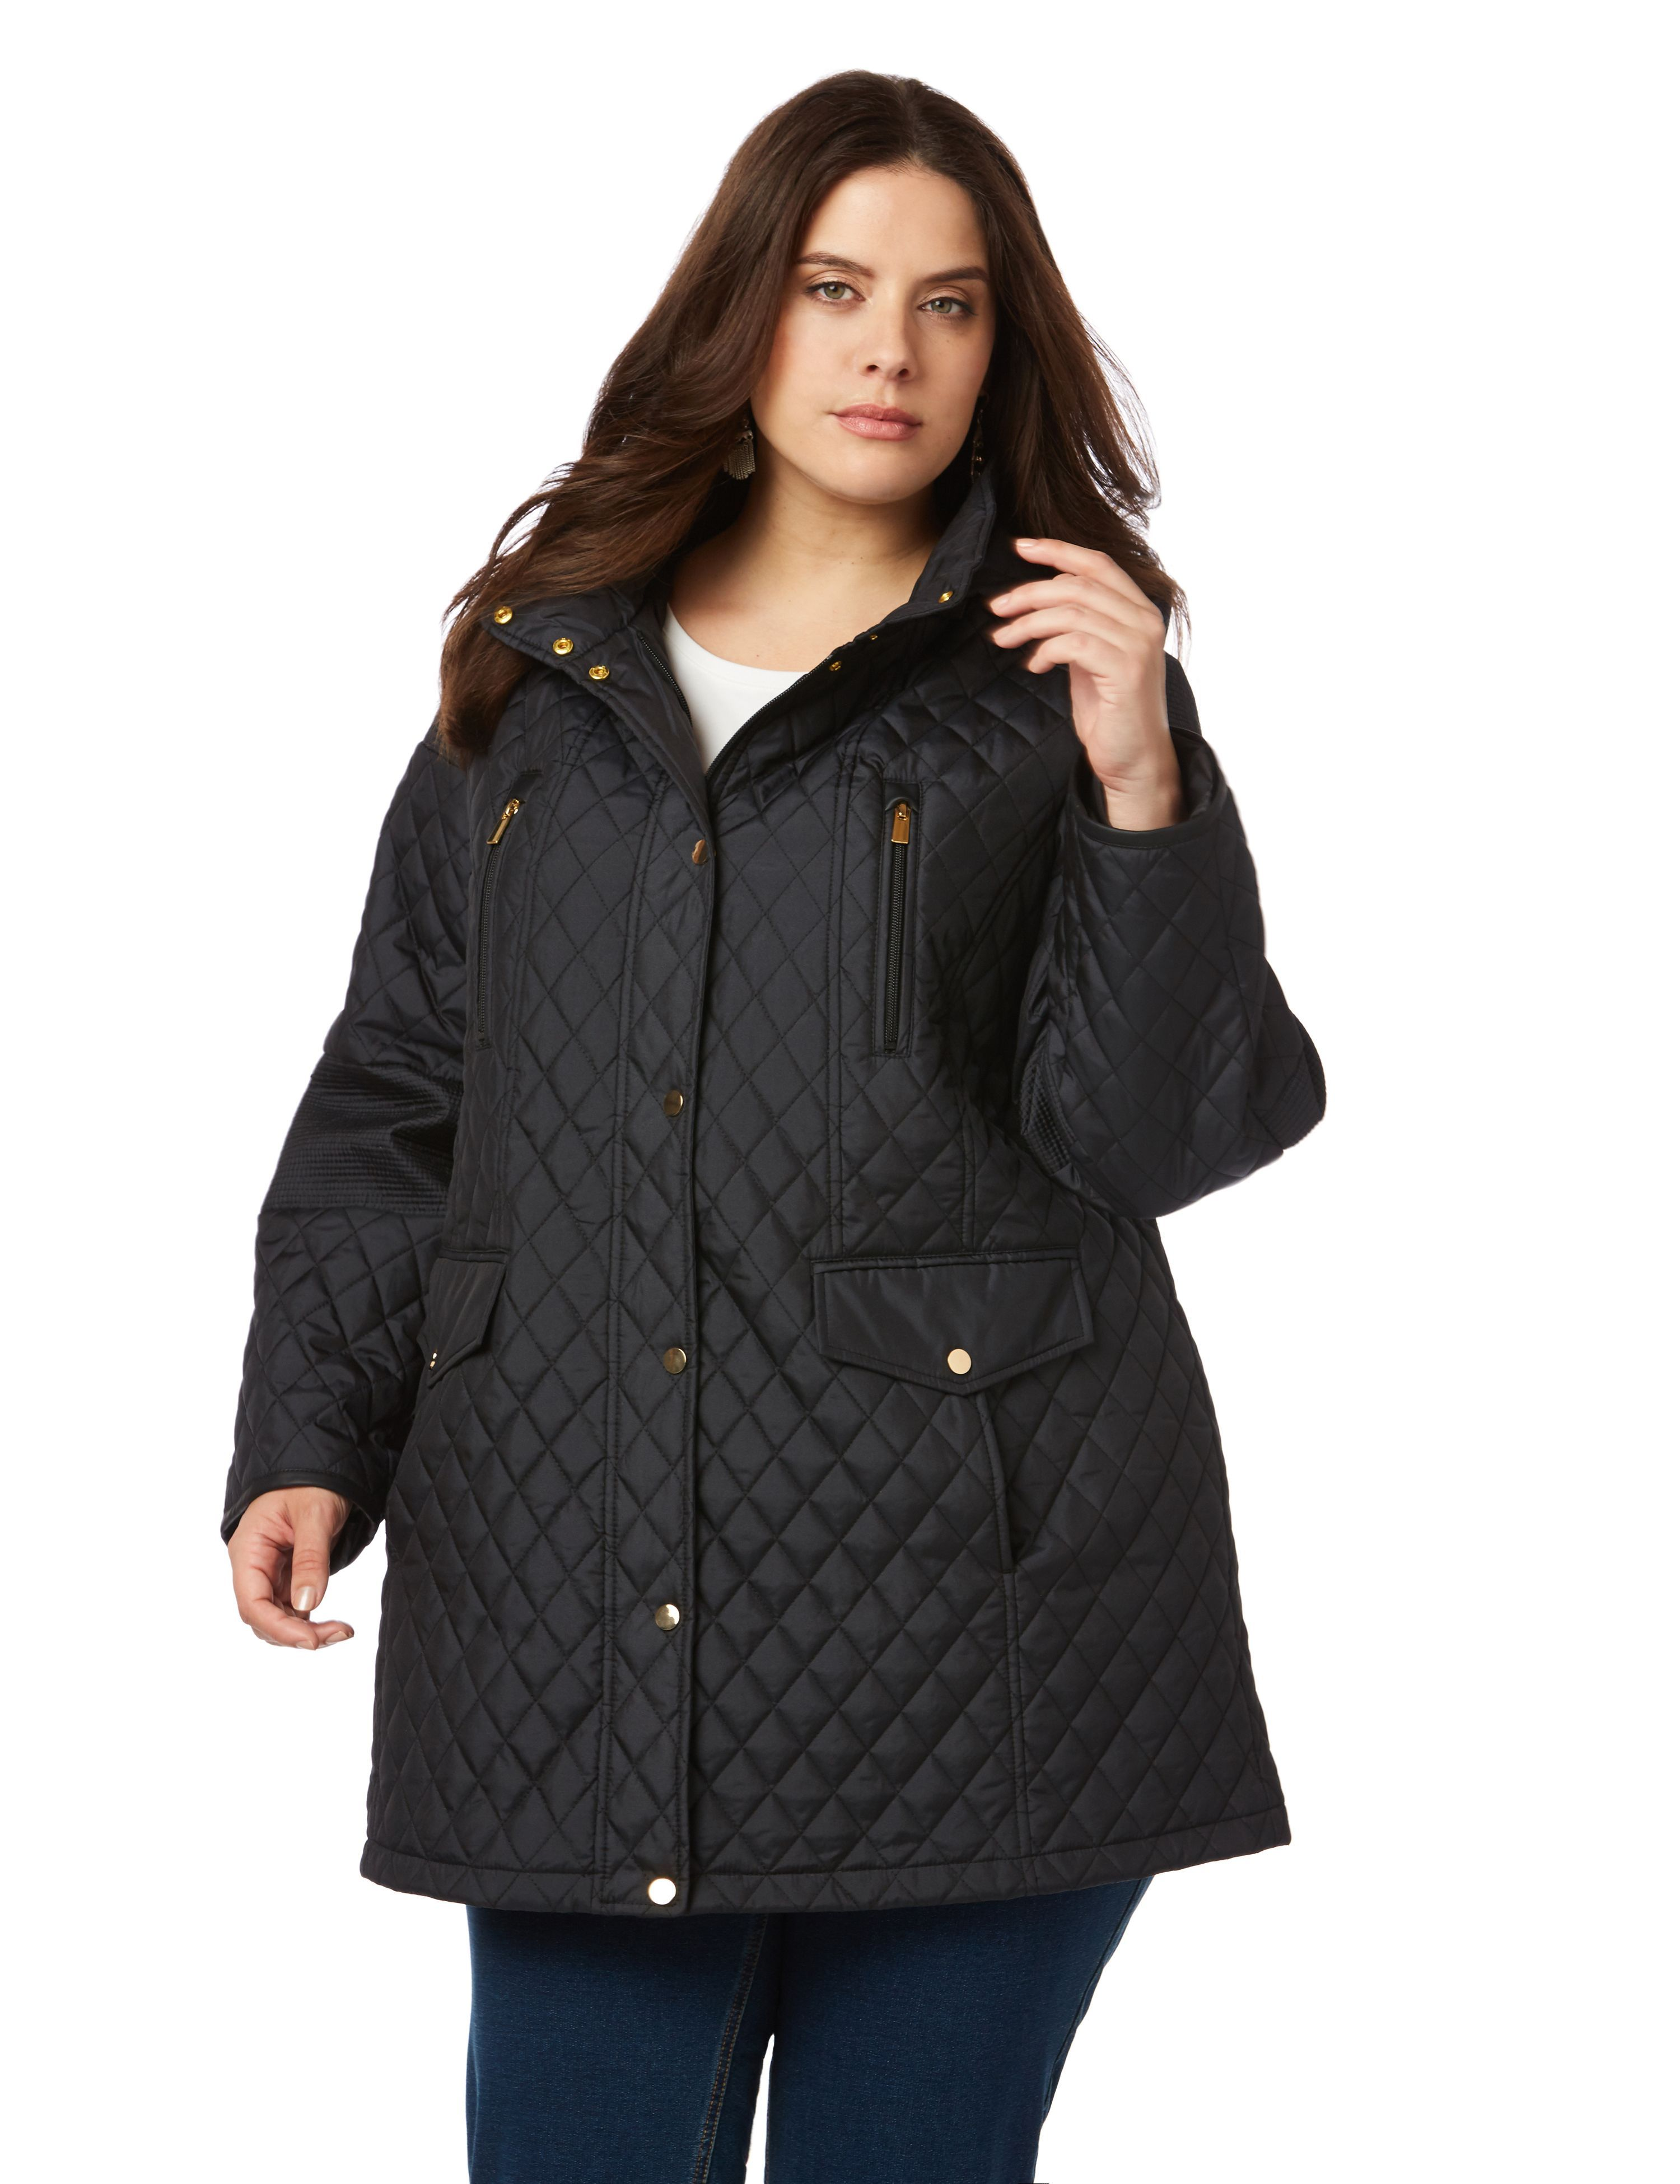 Quilted Parka Original Price 169 00 Available At Maurices Clothes Quilted Parka Fashion